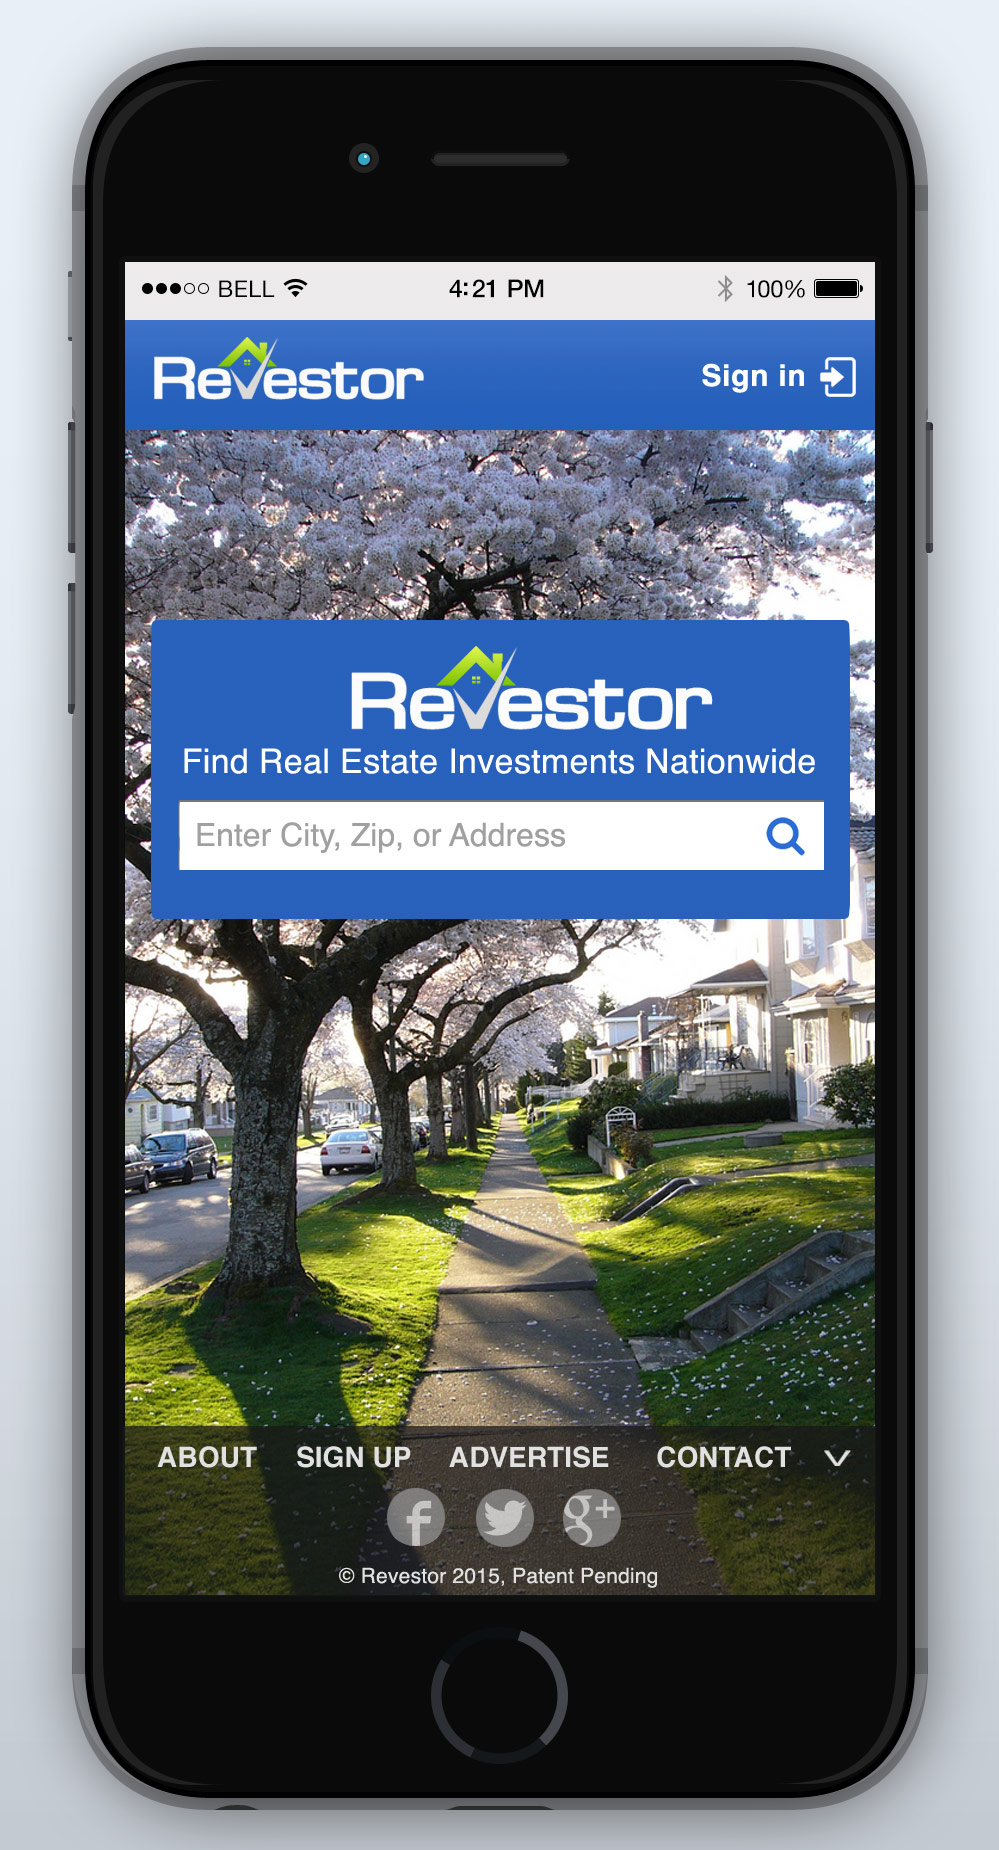 Revestor Is Excited to Announce the Launch of Their New Real